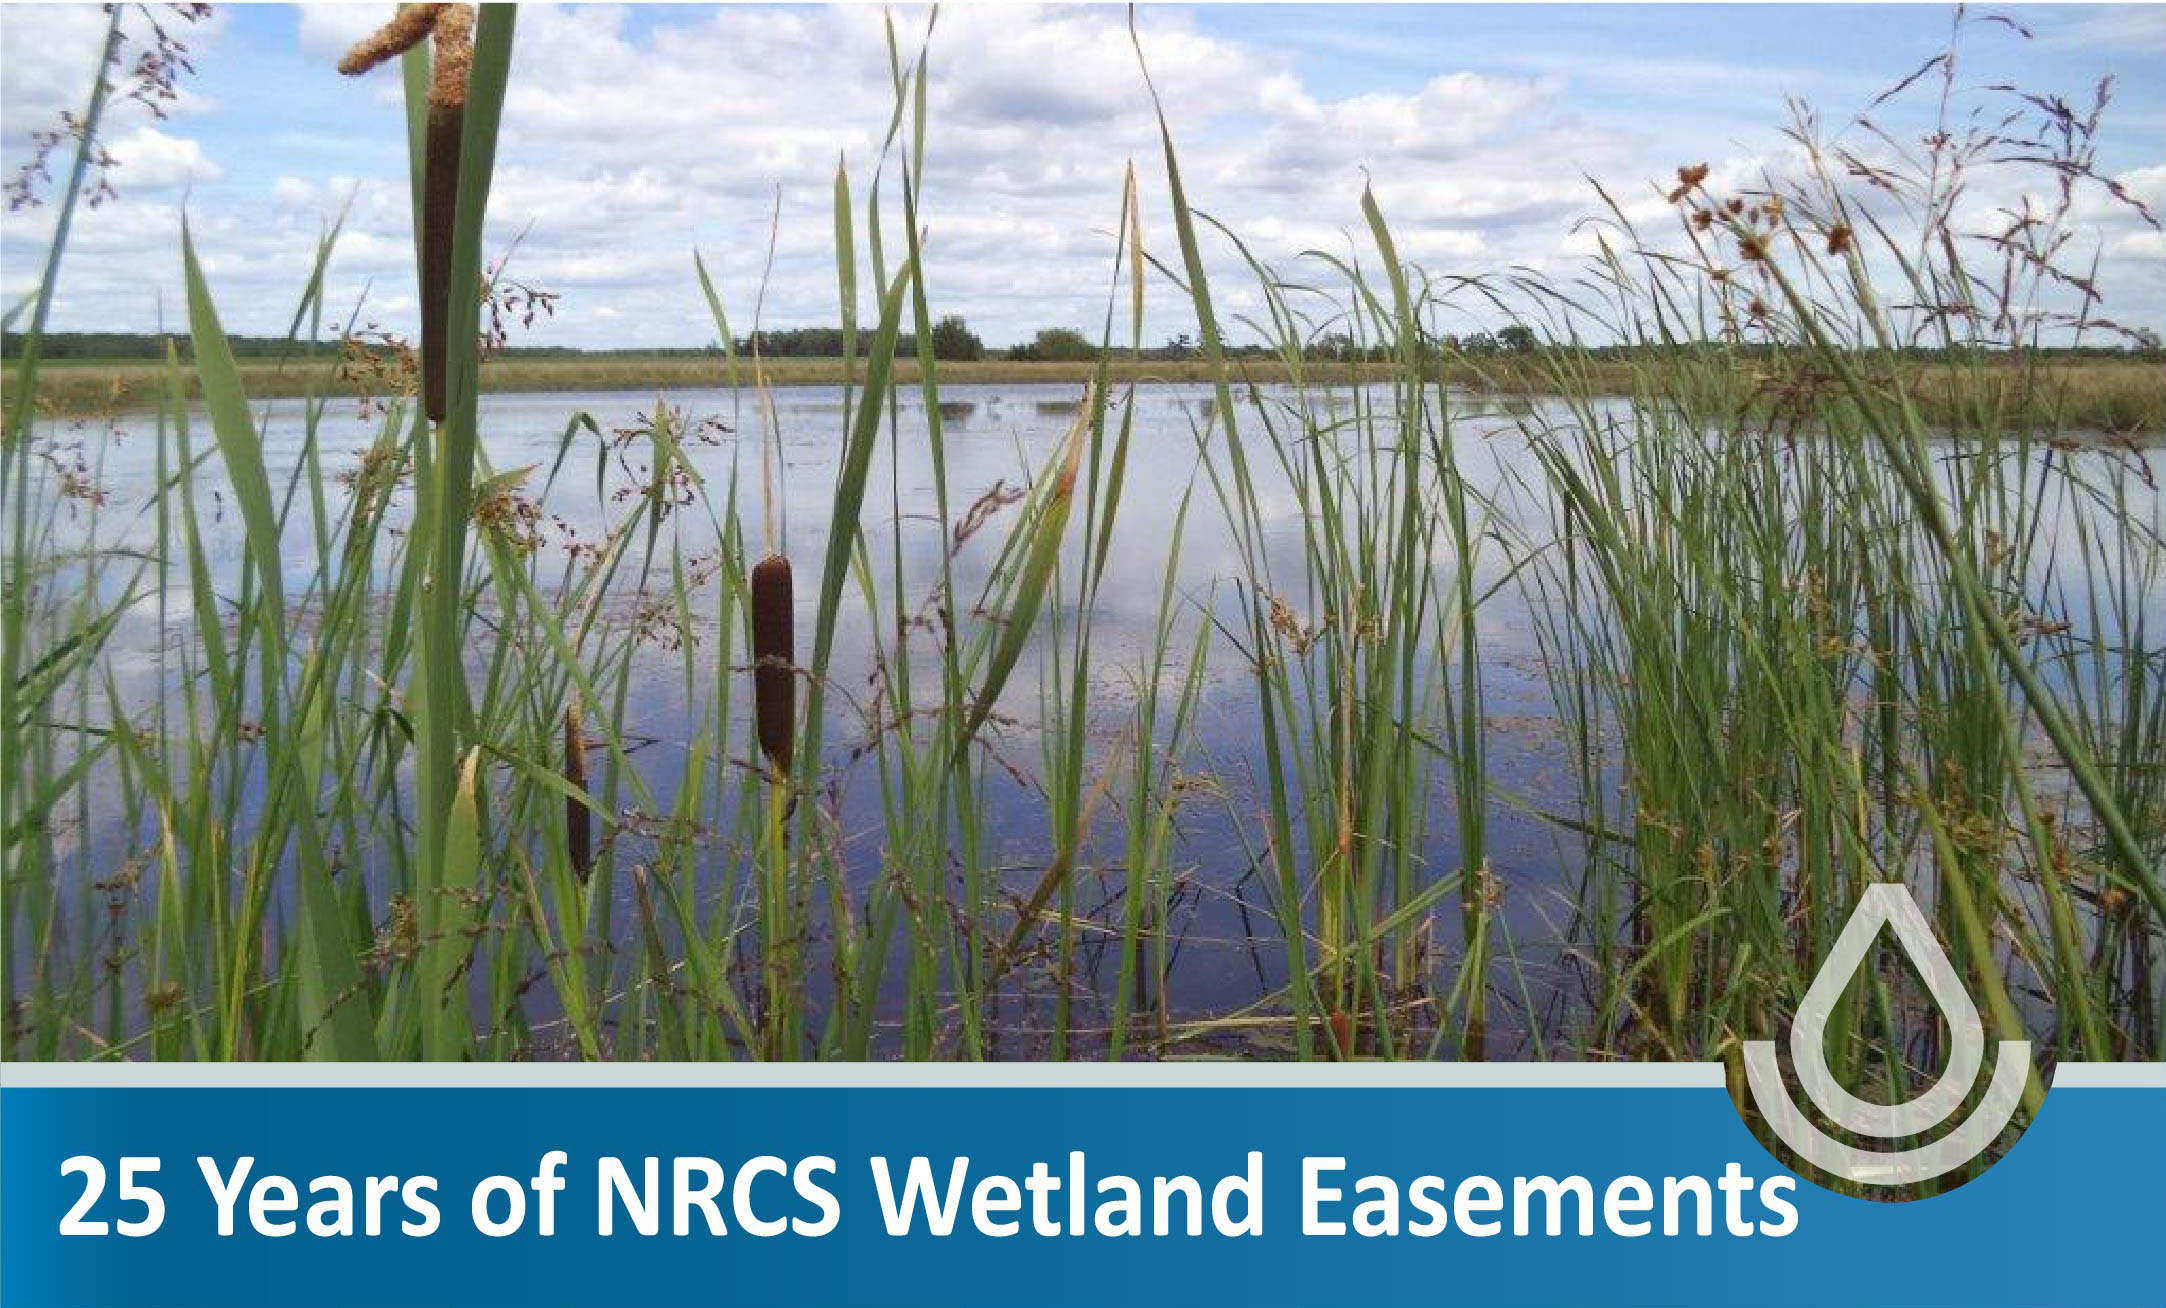 Over 25 Years of Wetland Restoration Success